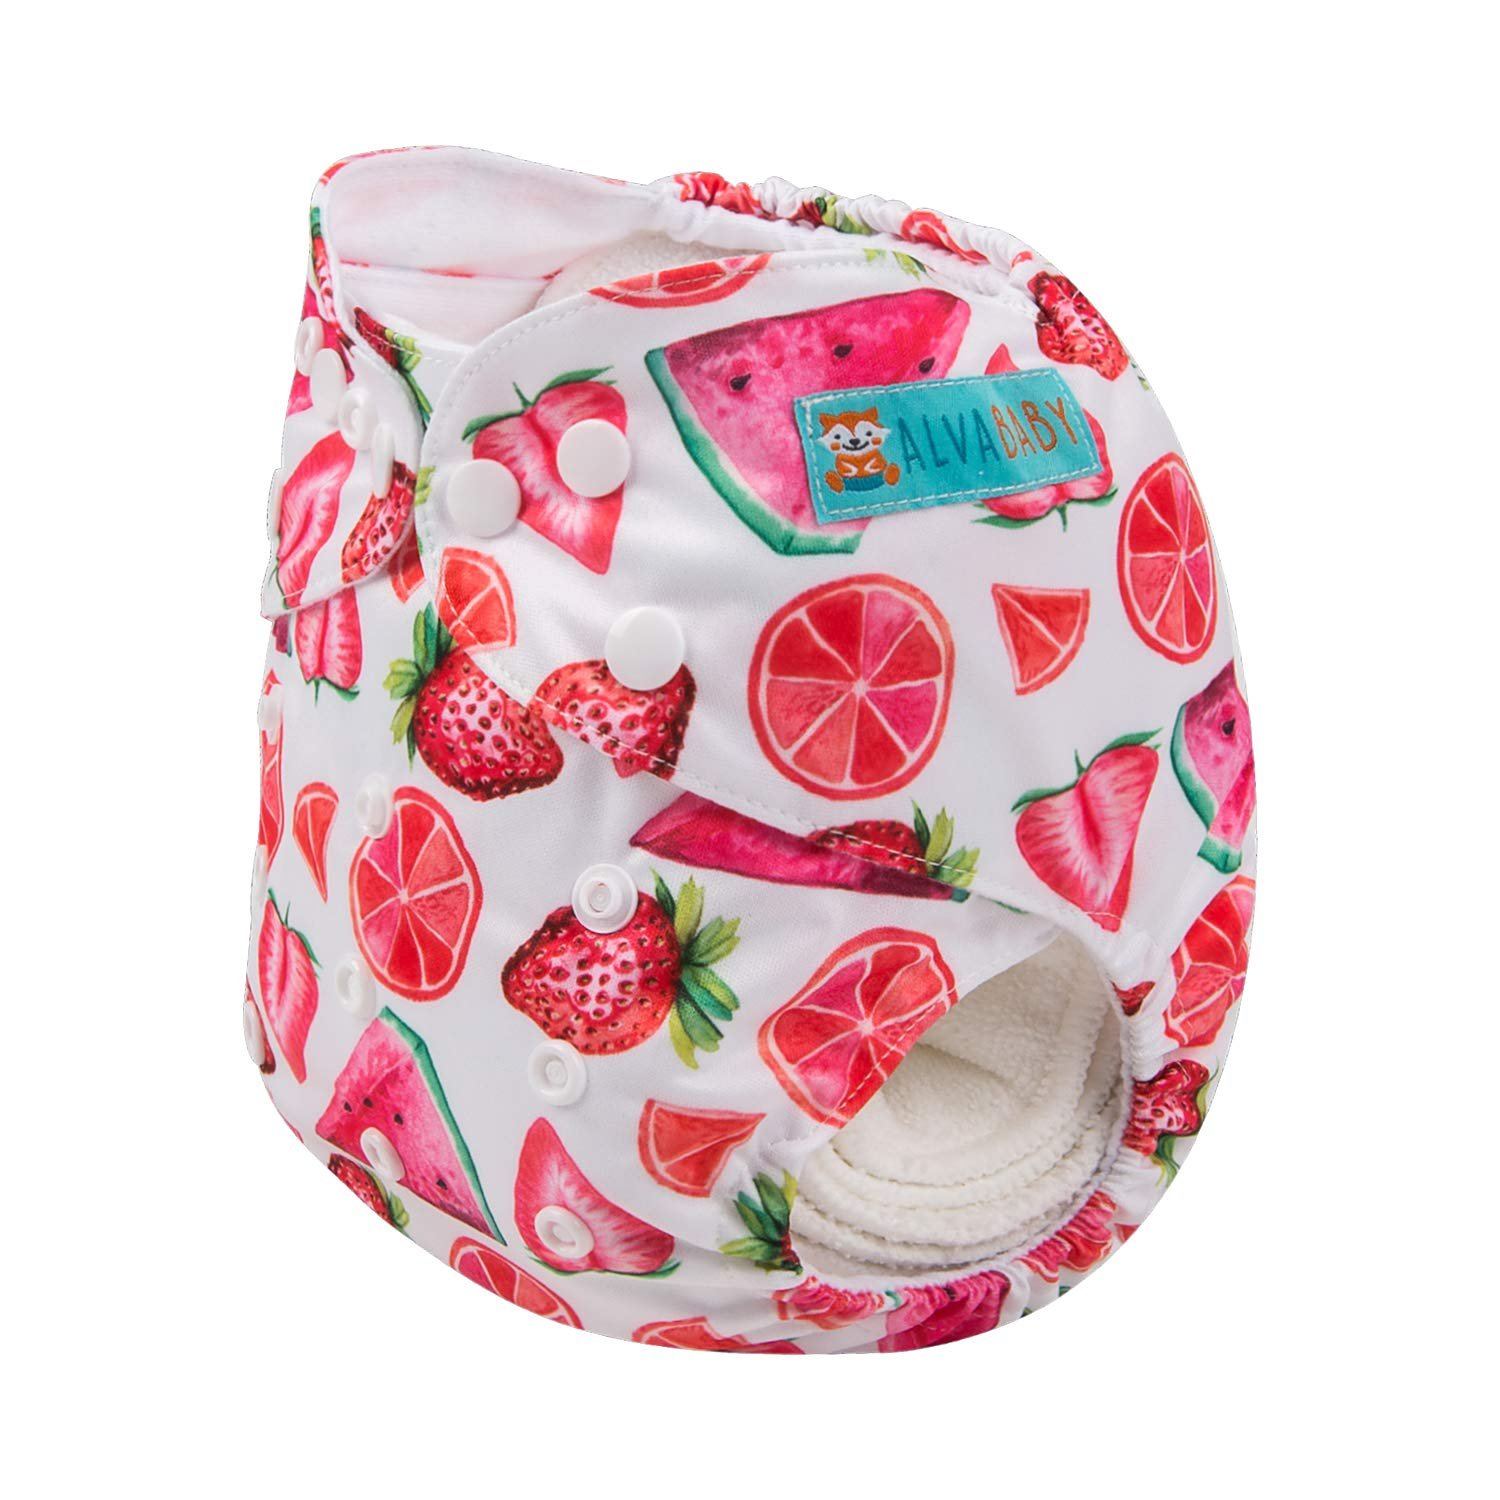 2 Inserts ALVABABY Baby New Printed Design Reuseable Washable Pocket Cloth Diaper Nappy H-YK49